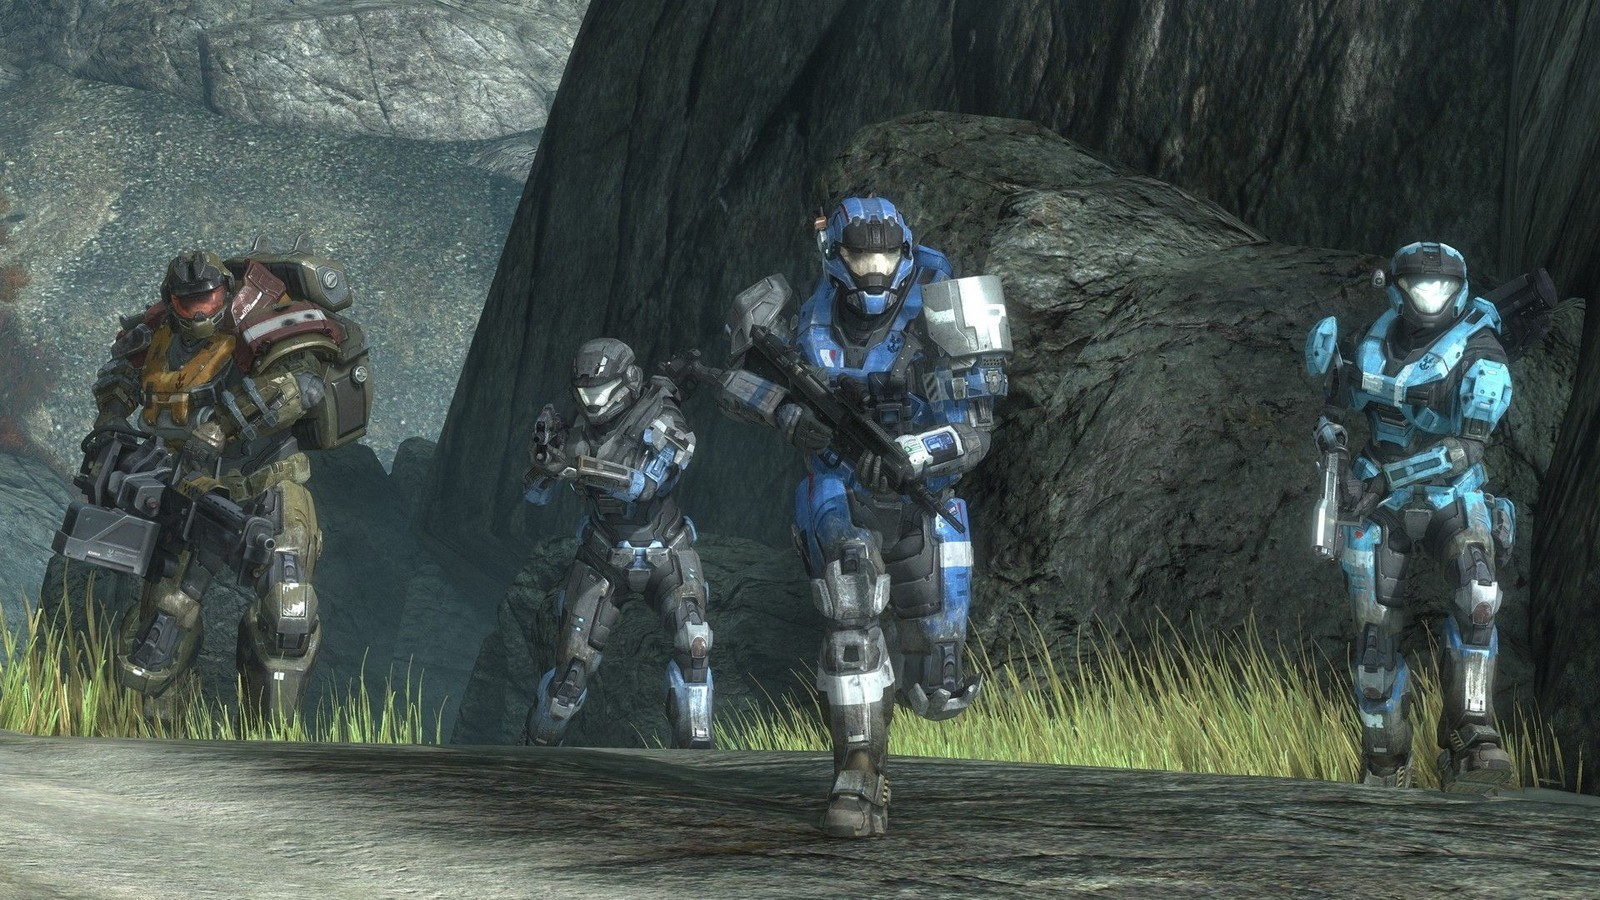 Halo The Master Chief Collection beta